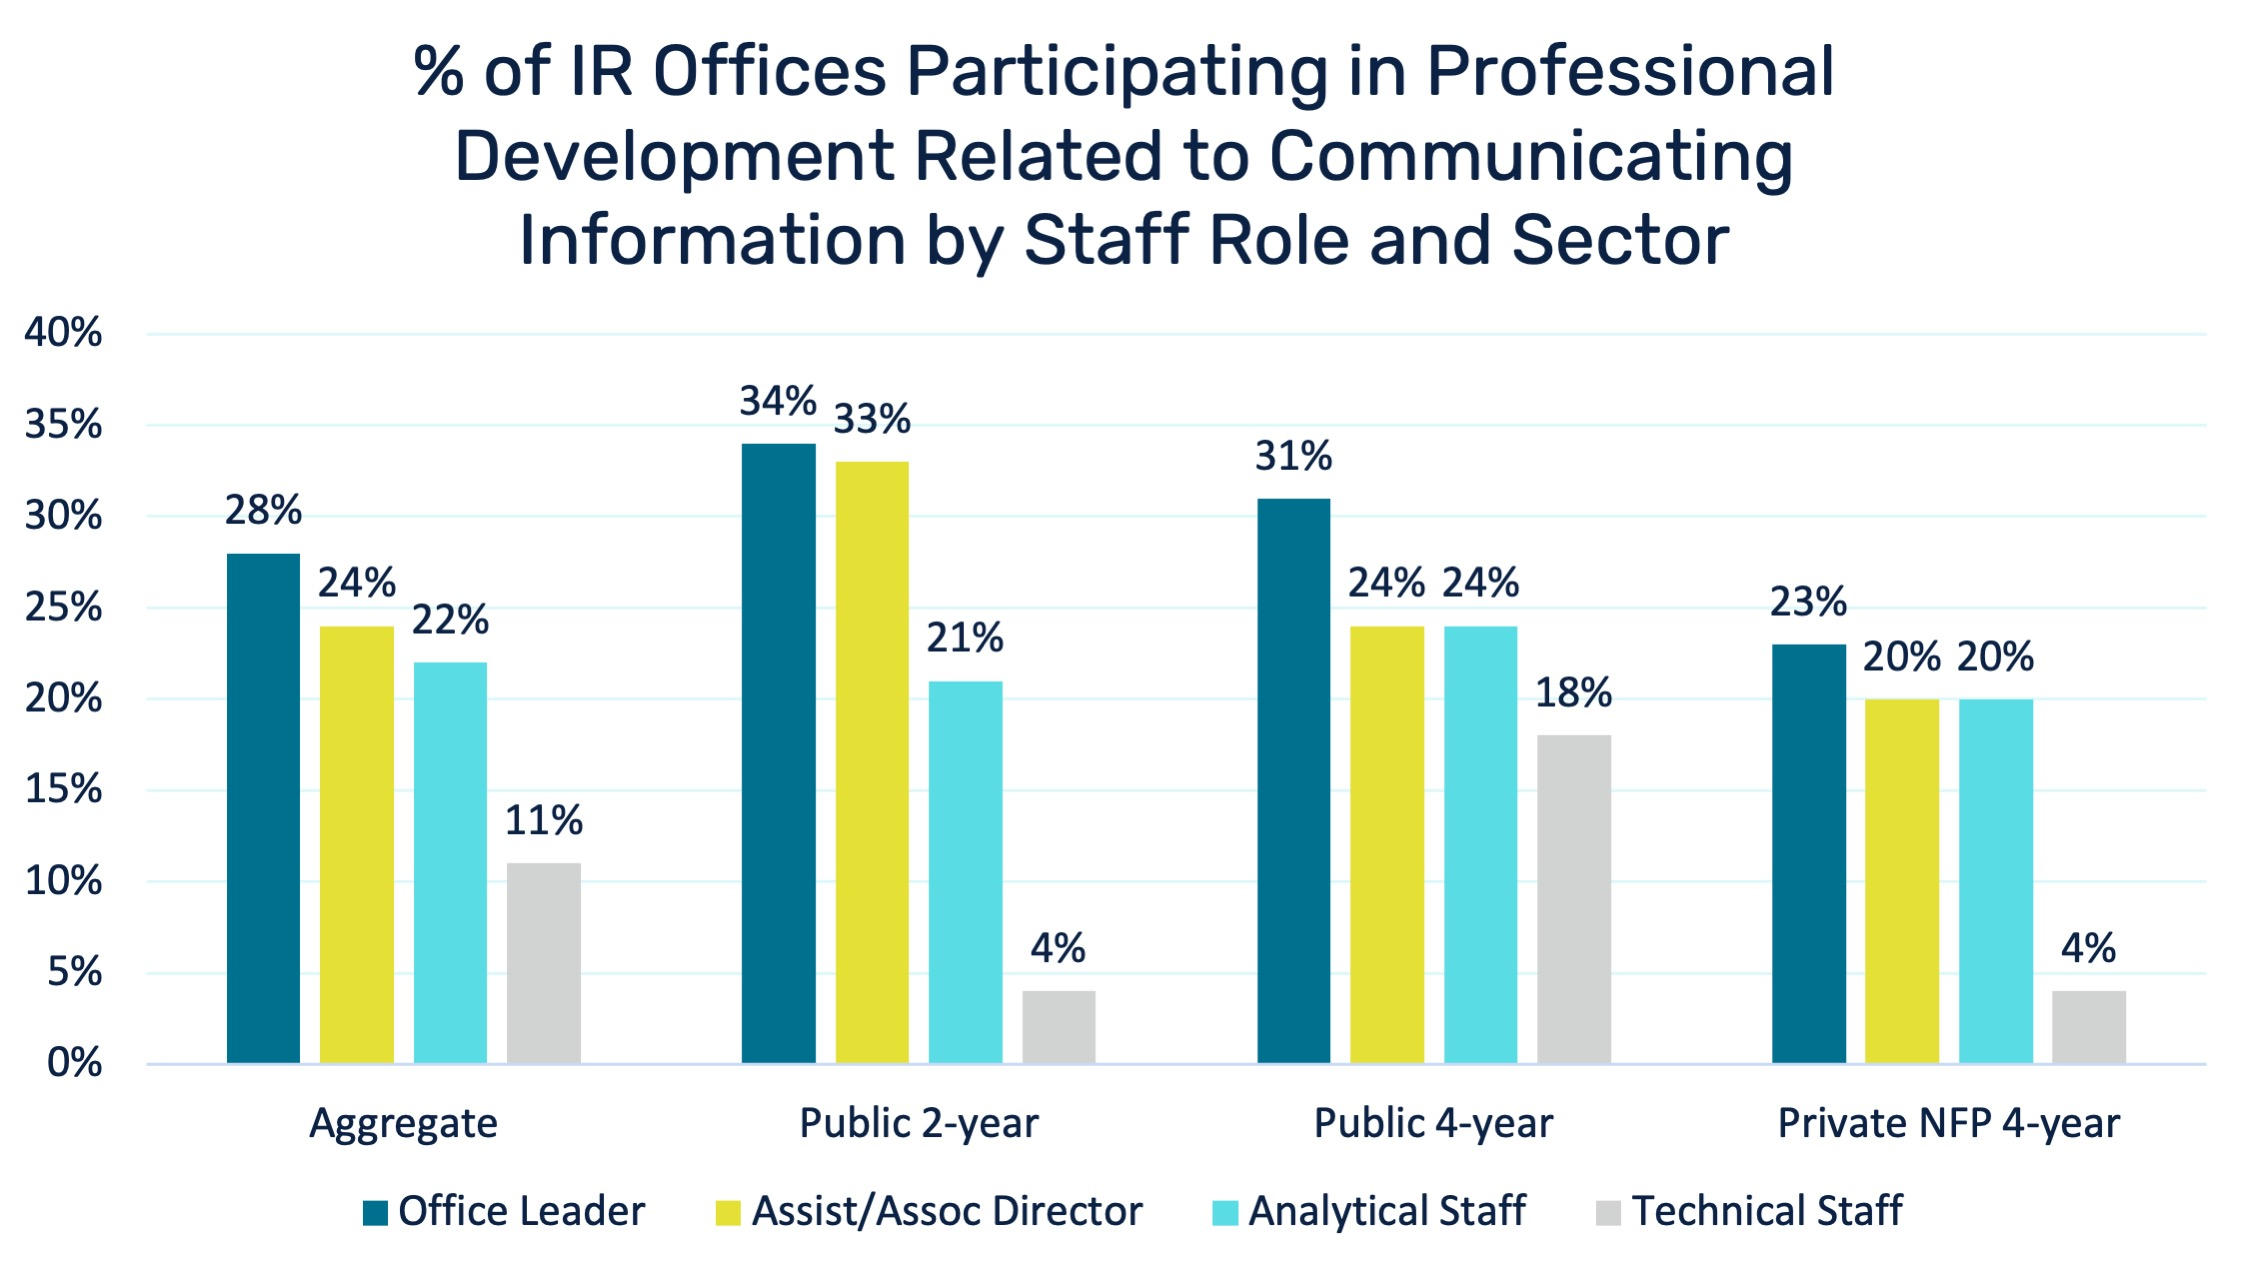 Bar Chart showing percent of IR Offices Participating in Professional Development Related to Communicating Information